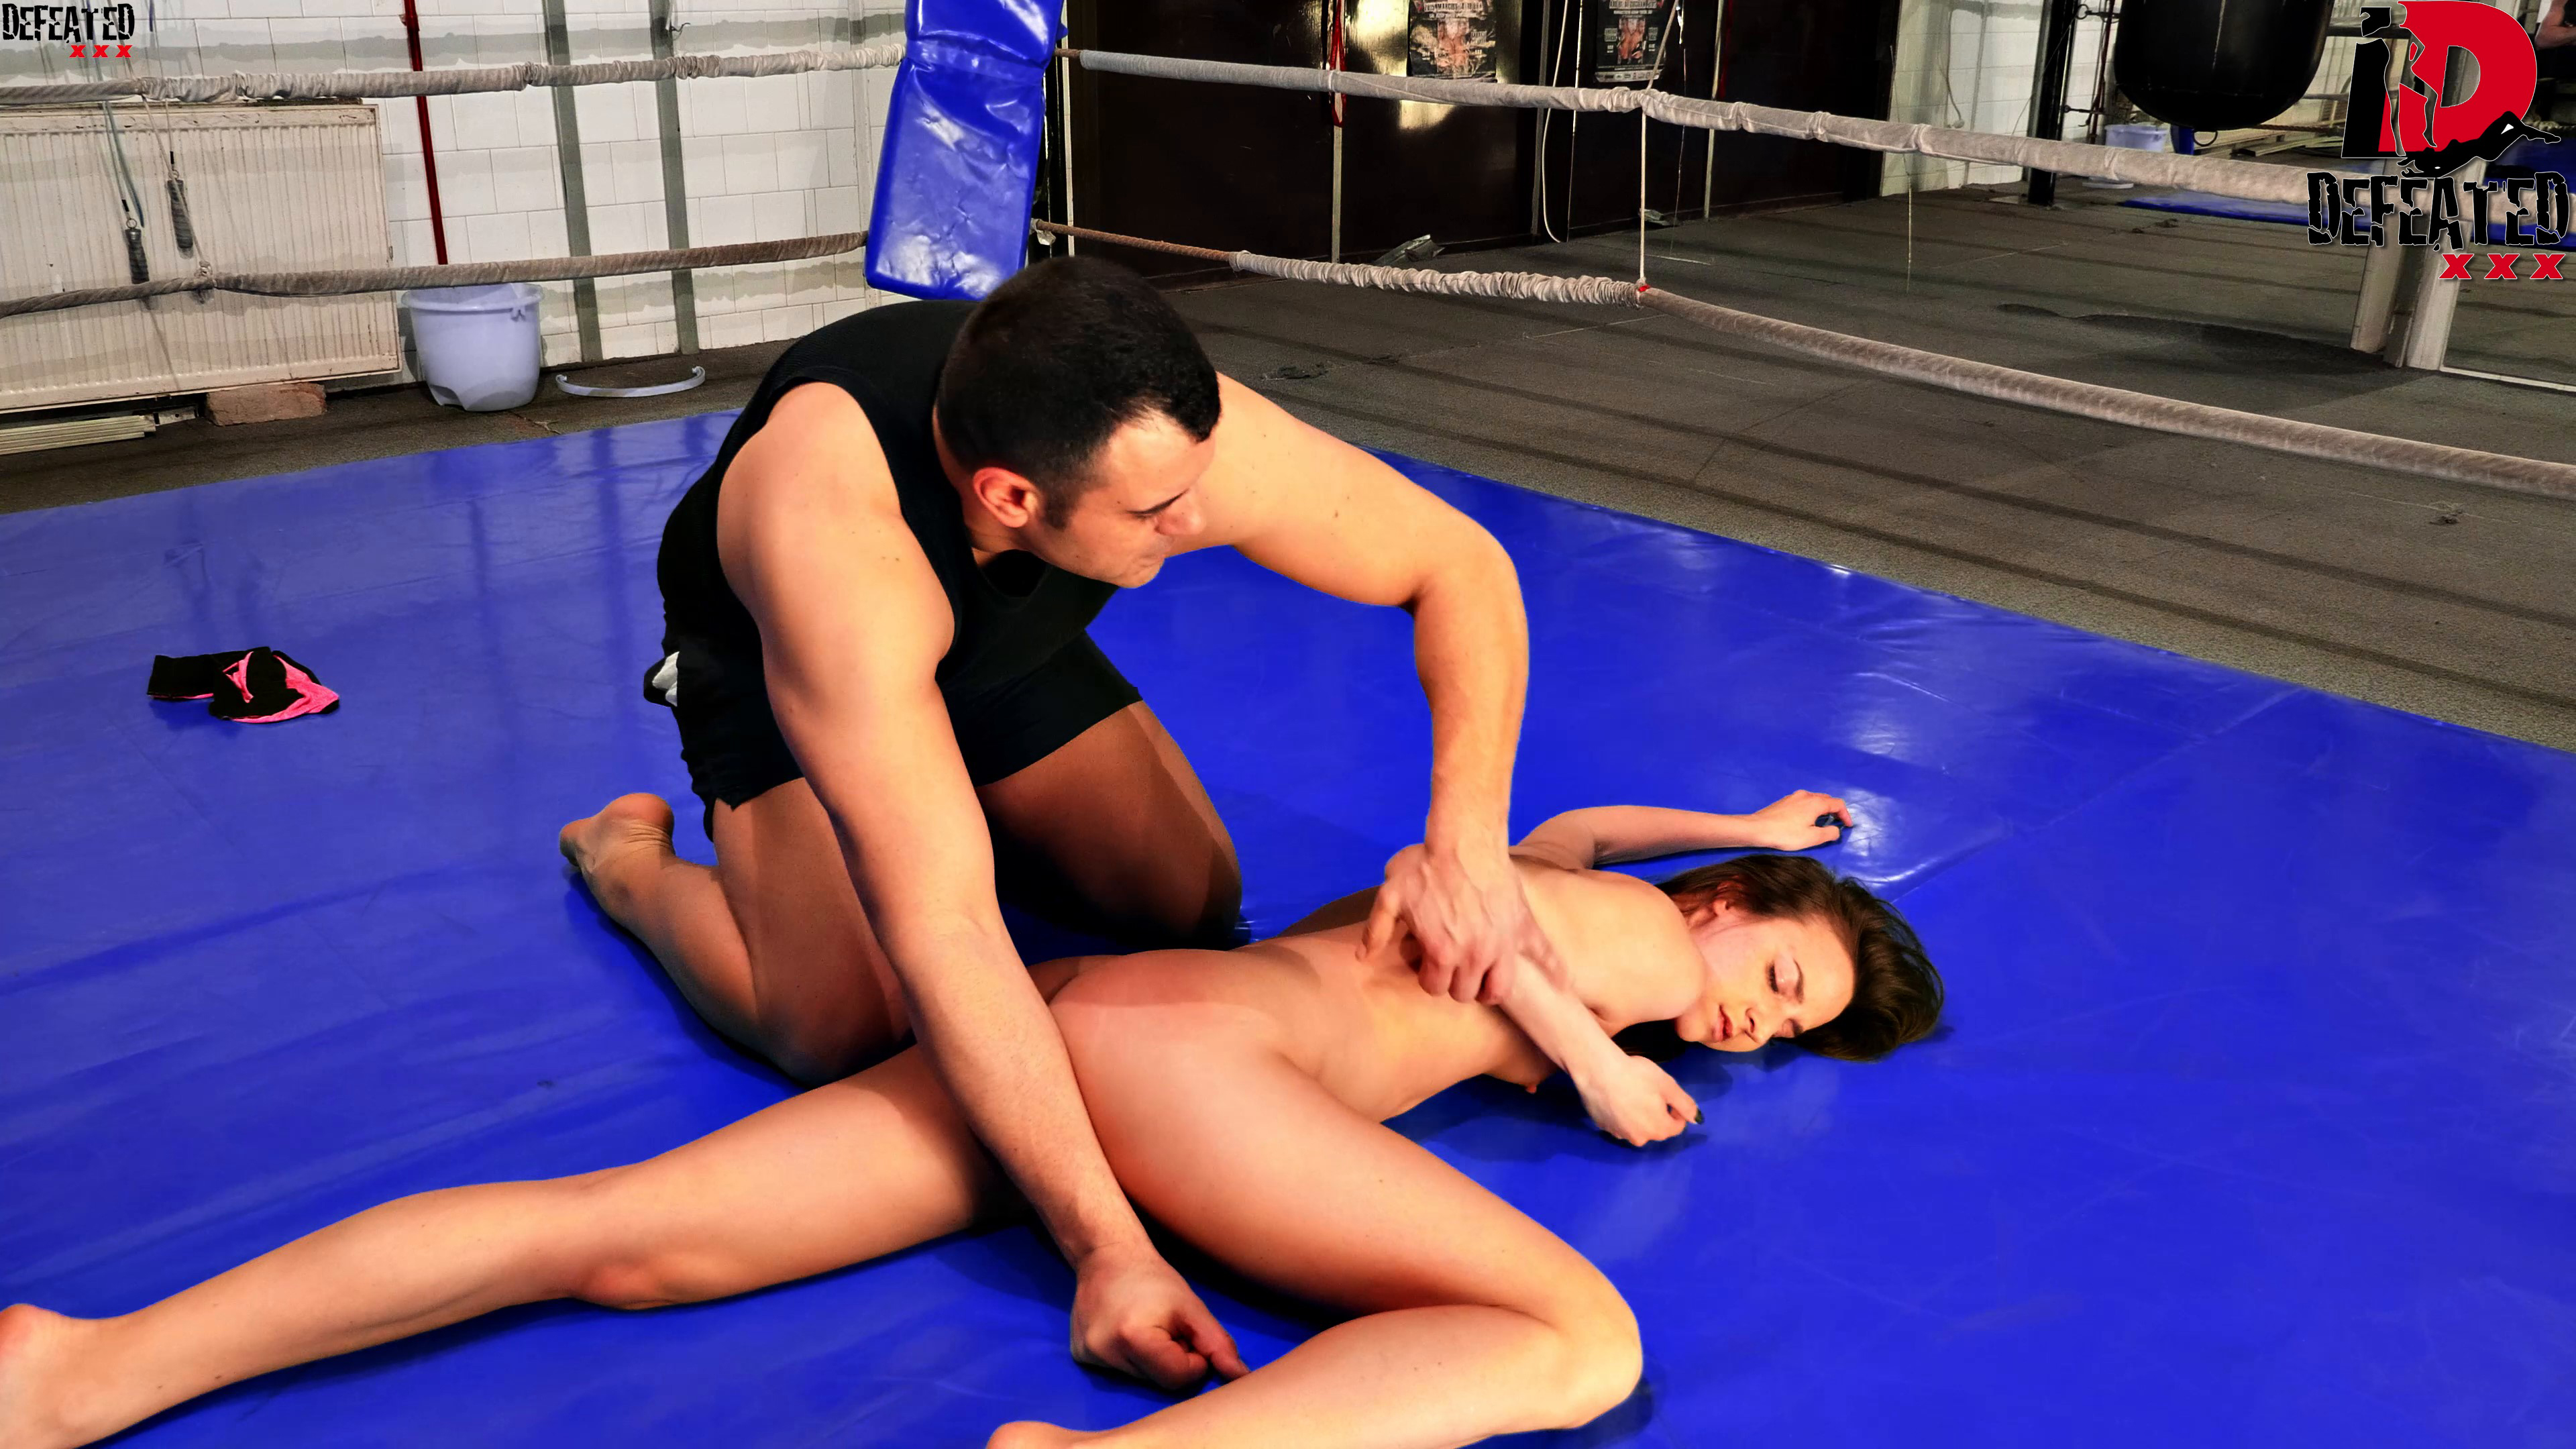 DEFEATED-MXD66---Amirah-Antonio-(93)